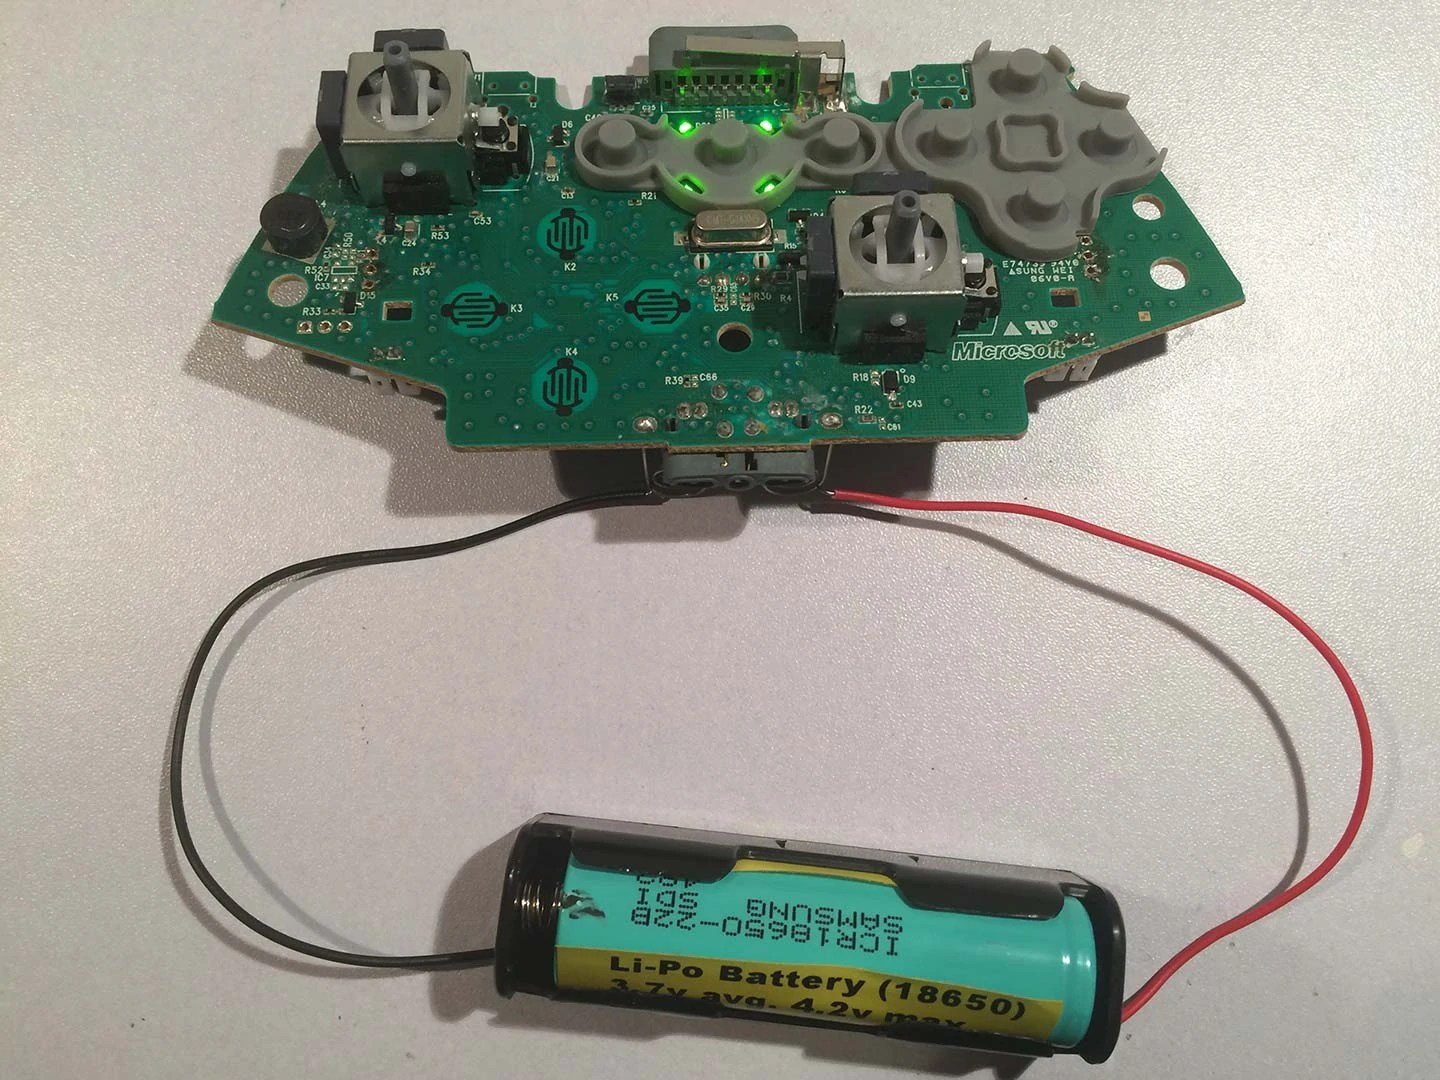 hight resolution of li po lithium battery test on a xbox 360 controller